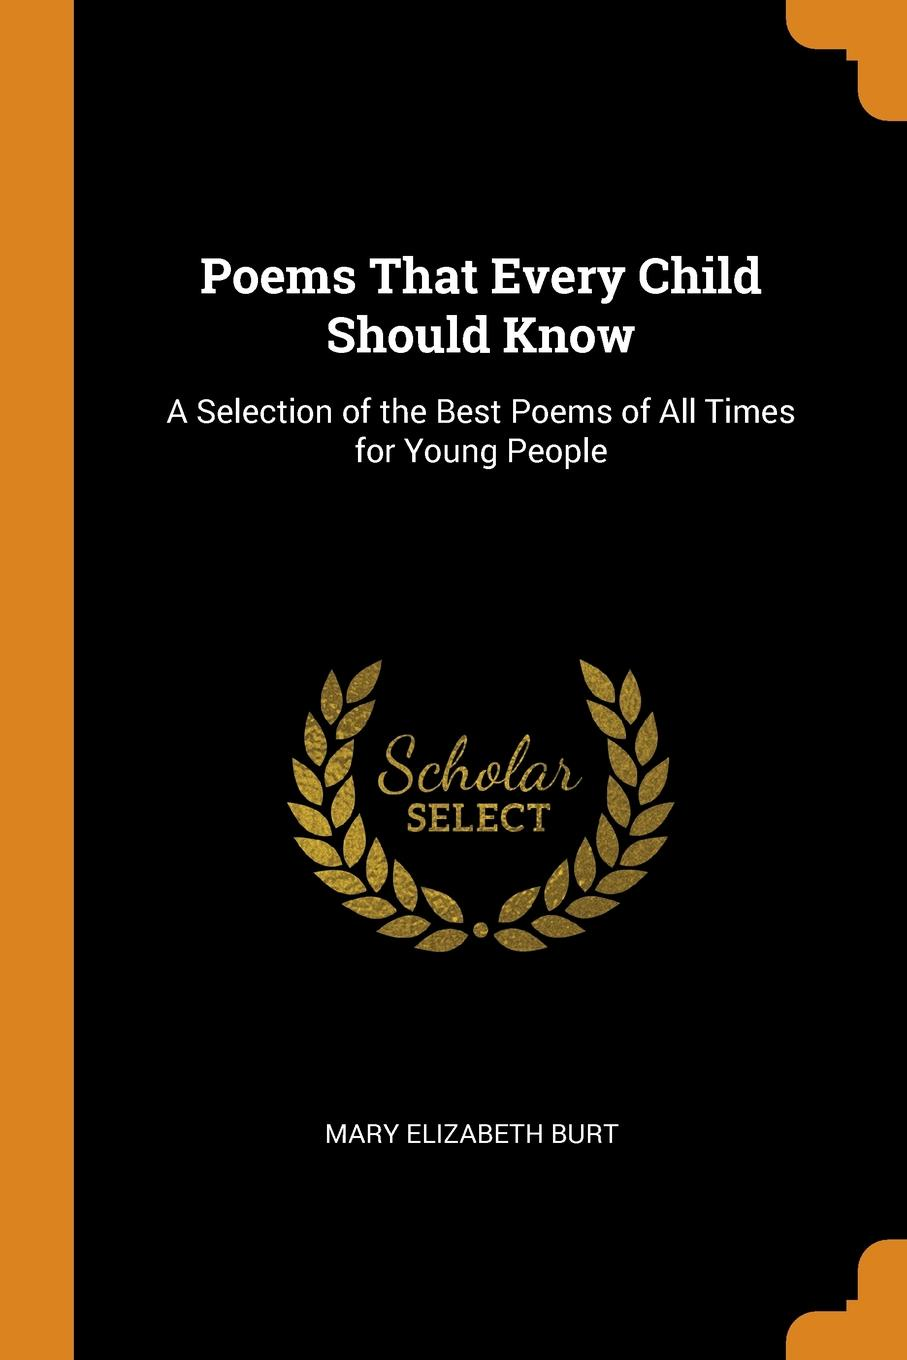 Mary Elizabeth Burt Poems That Every Child Should Know. A Selection of the Best Poems of All Times for Young People